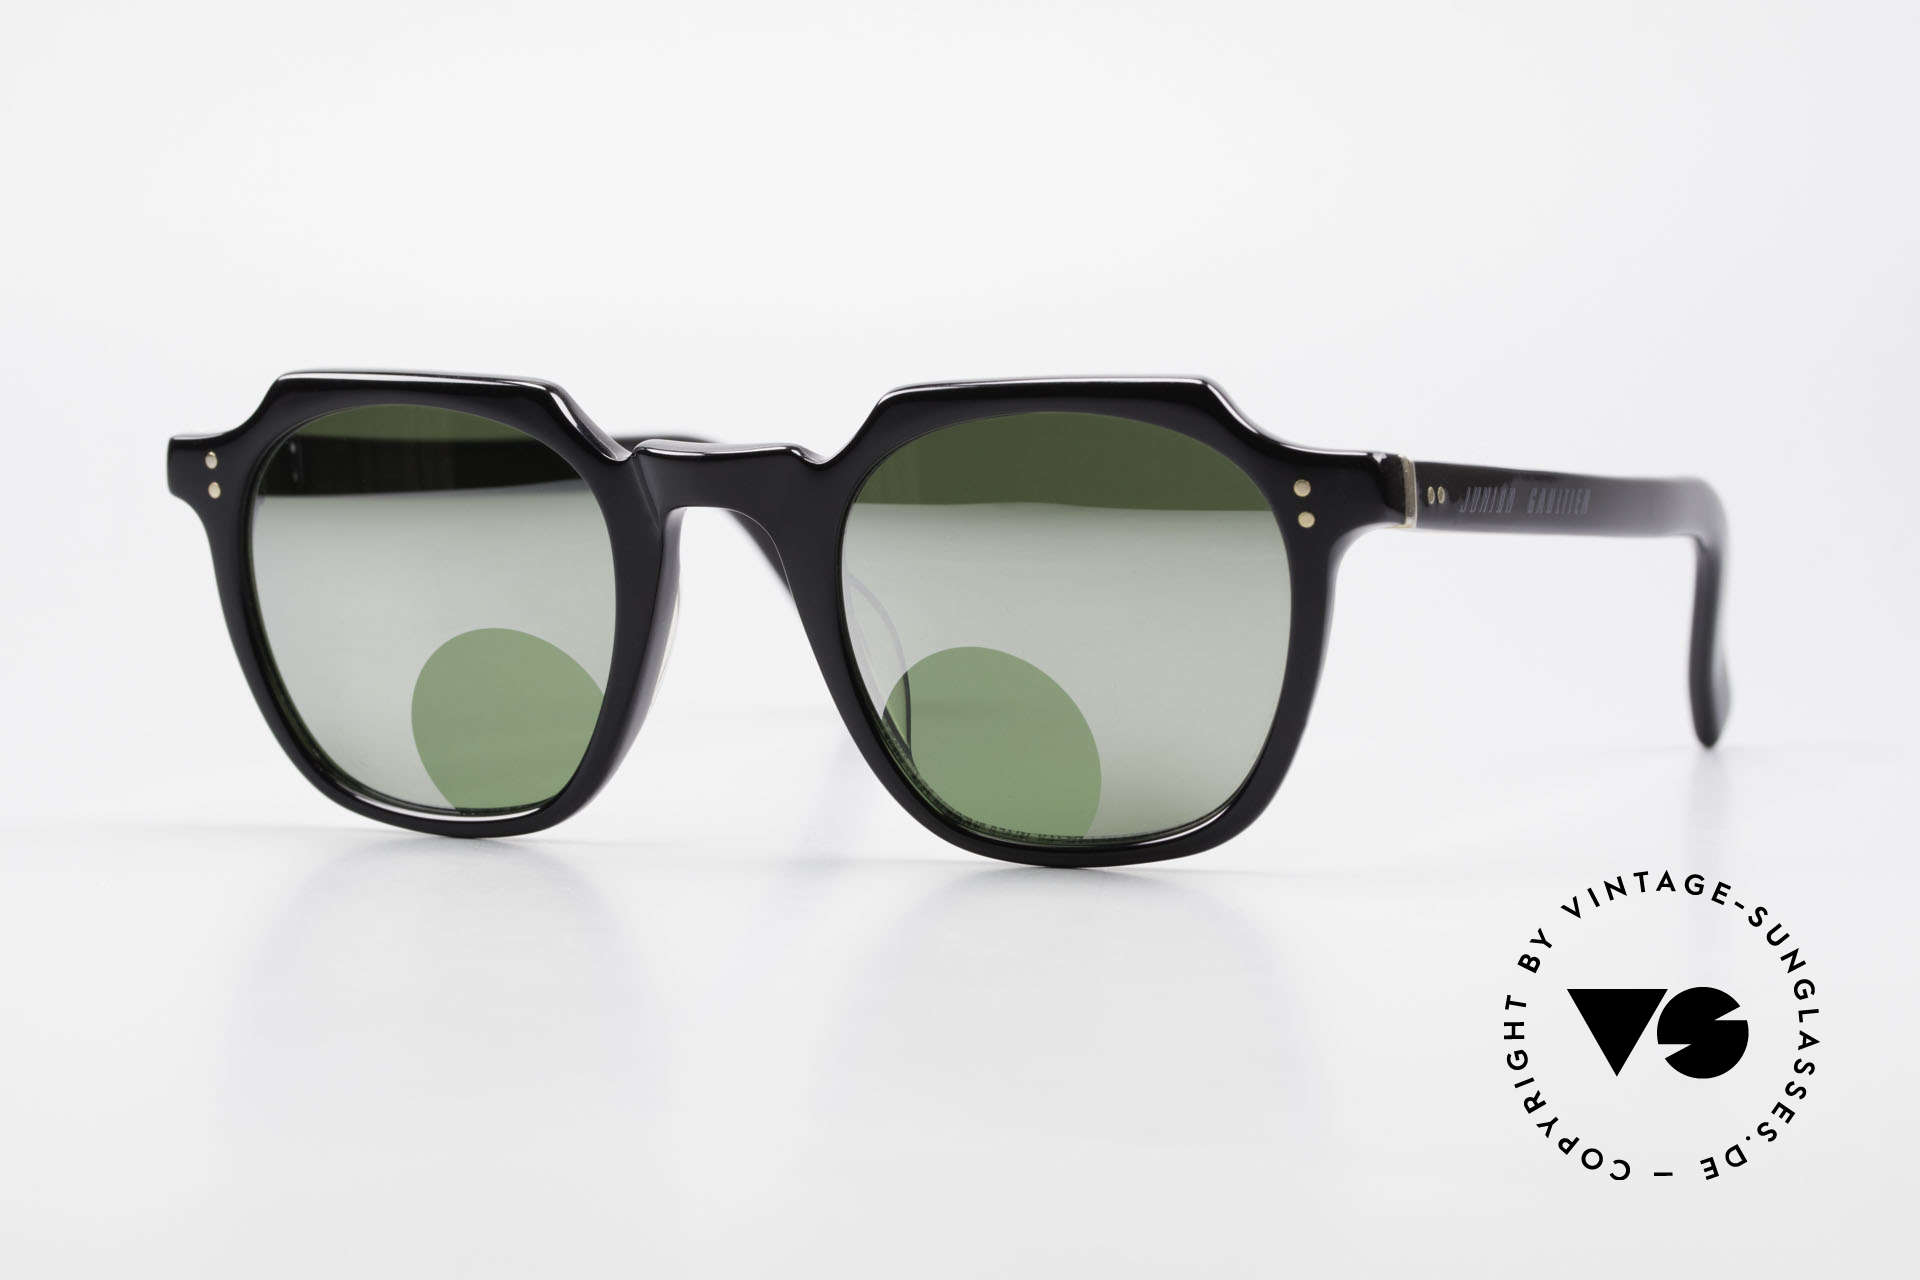 Jean Paul Gaultier 58-0071 Mirrored Lenses With Peephole, ingenious 1990's sunglasses by Jean Paul Gaultier, Made for Men and Women